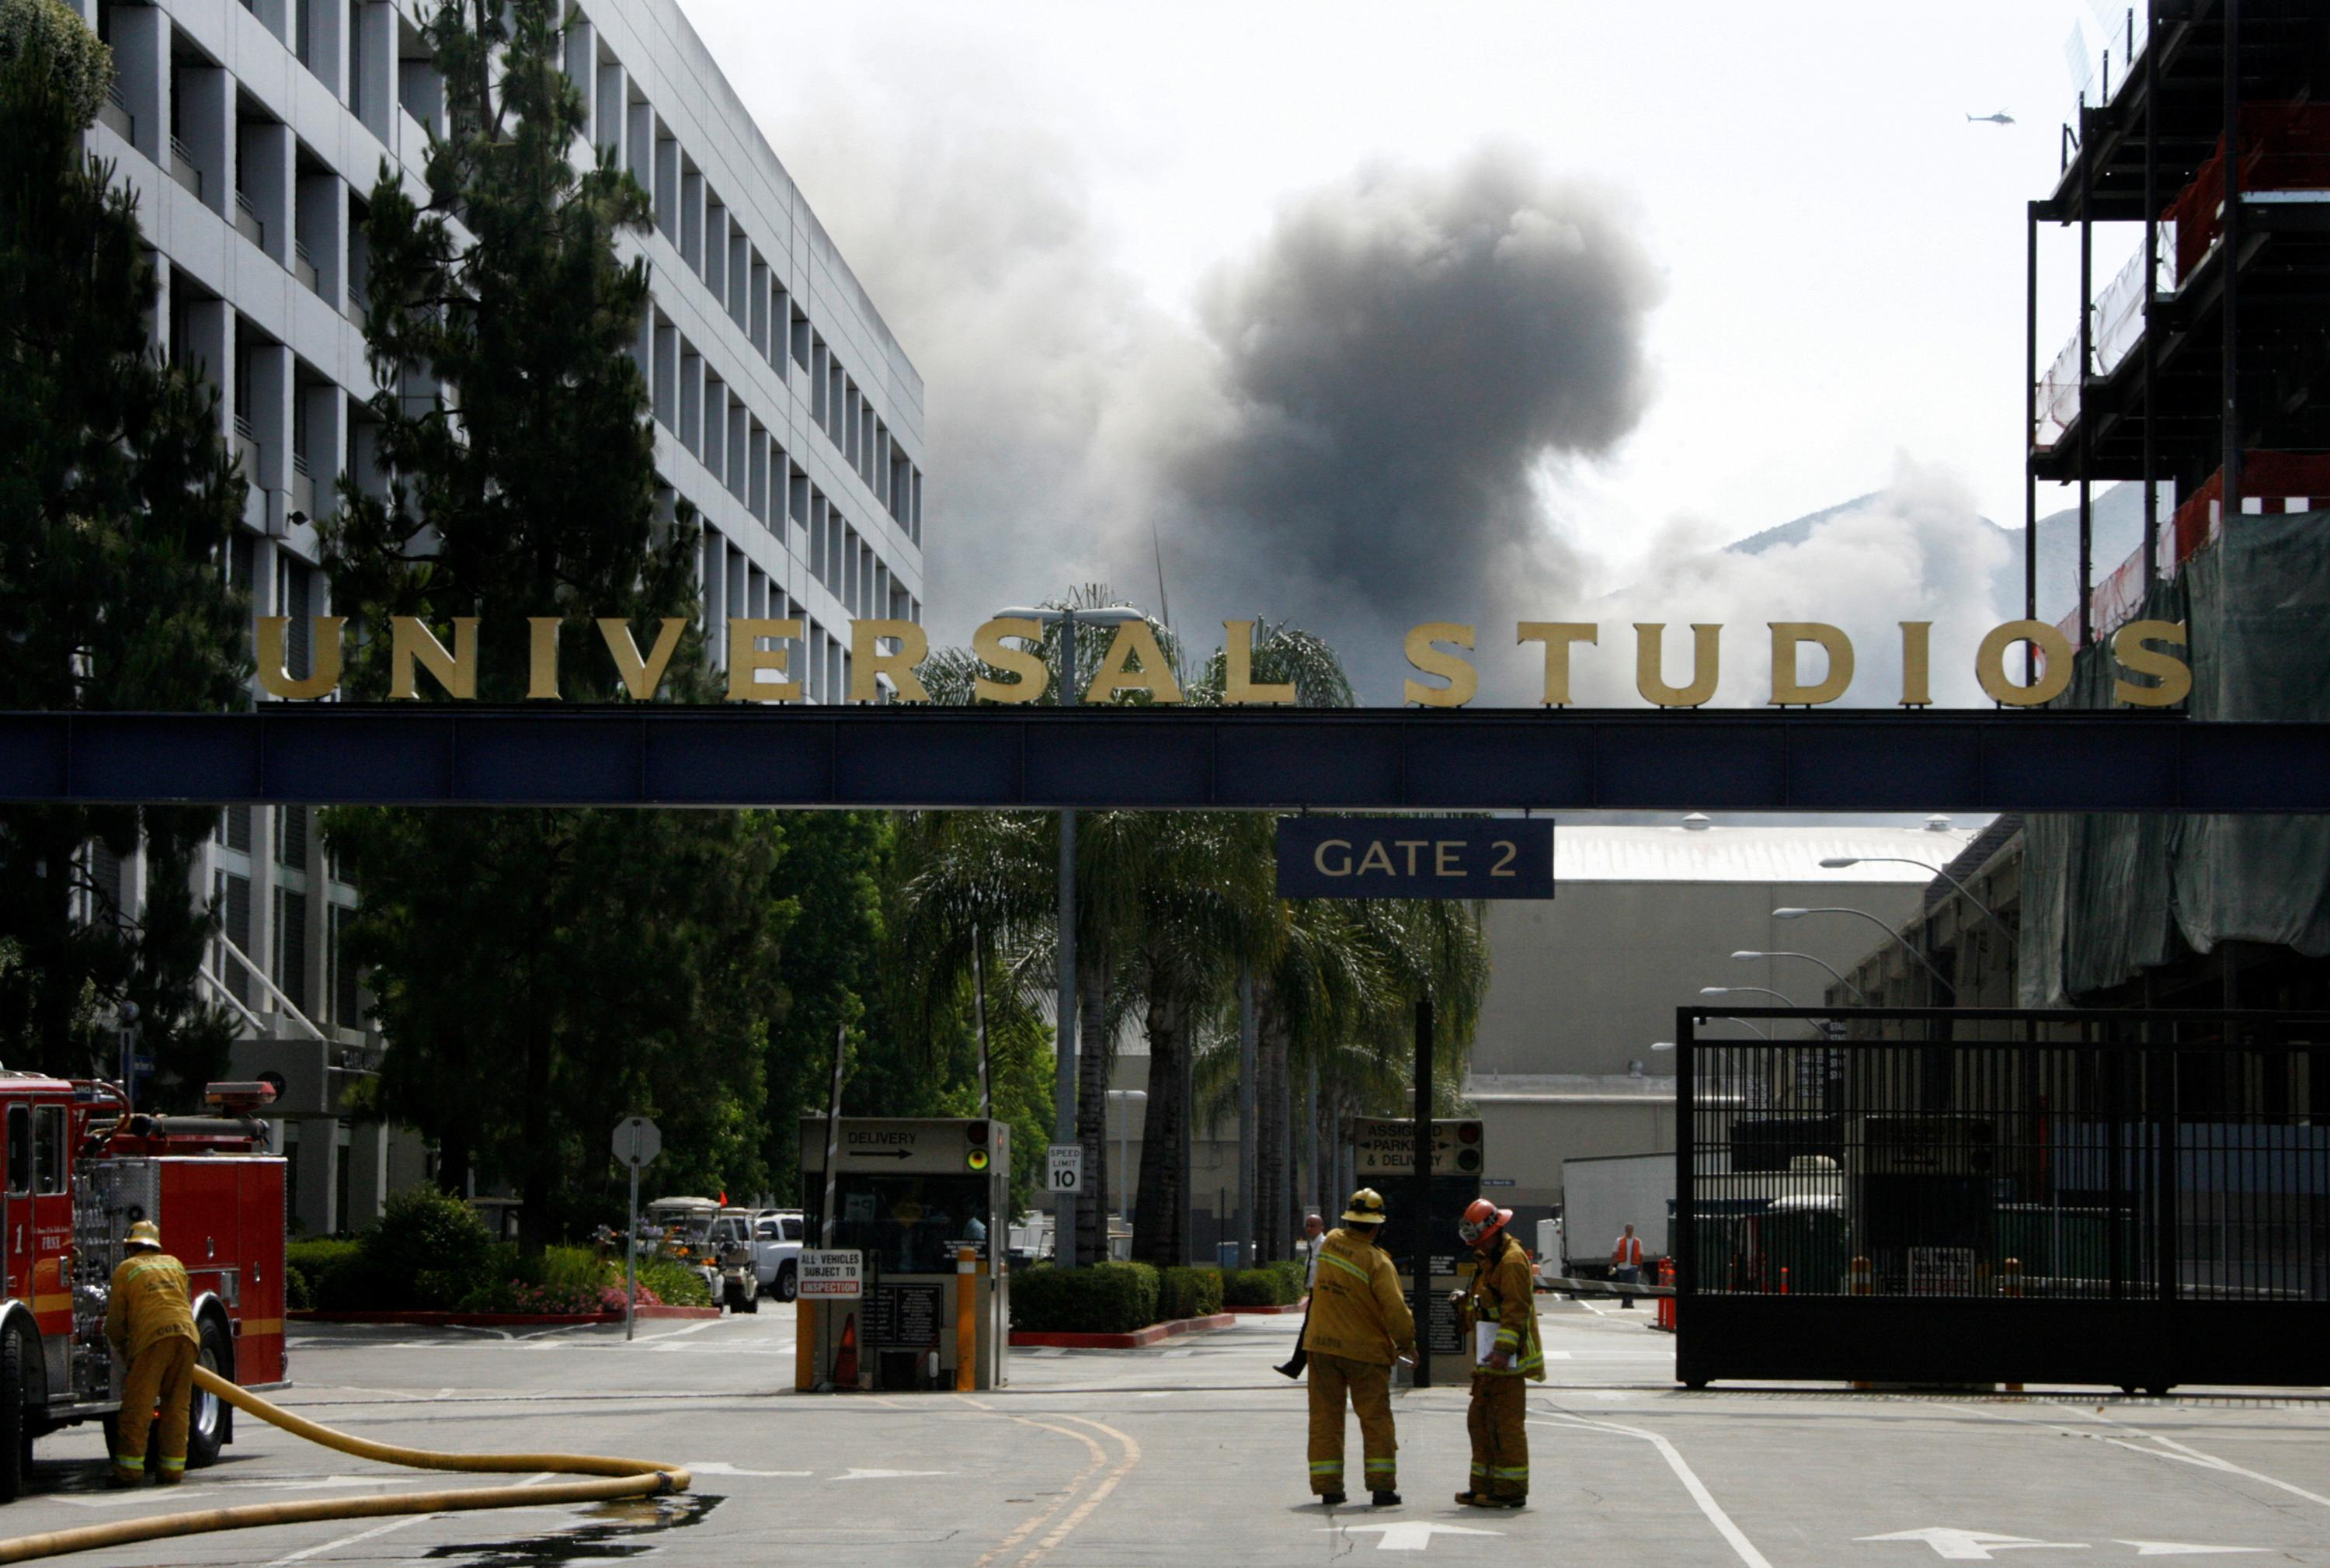 Musicians lament reported loss of recordings in decade-old Universal fire